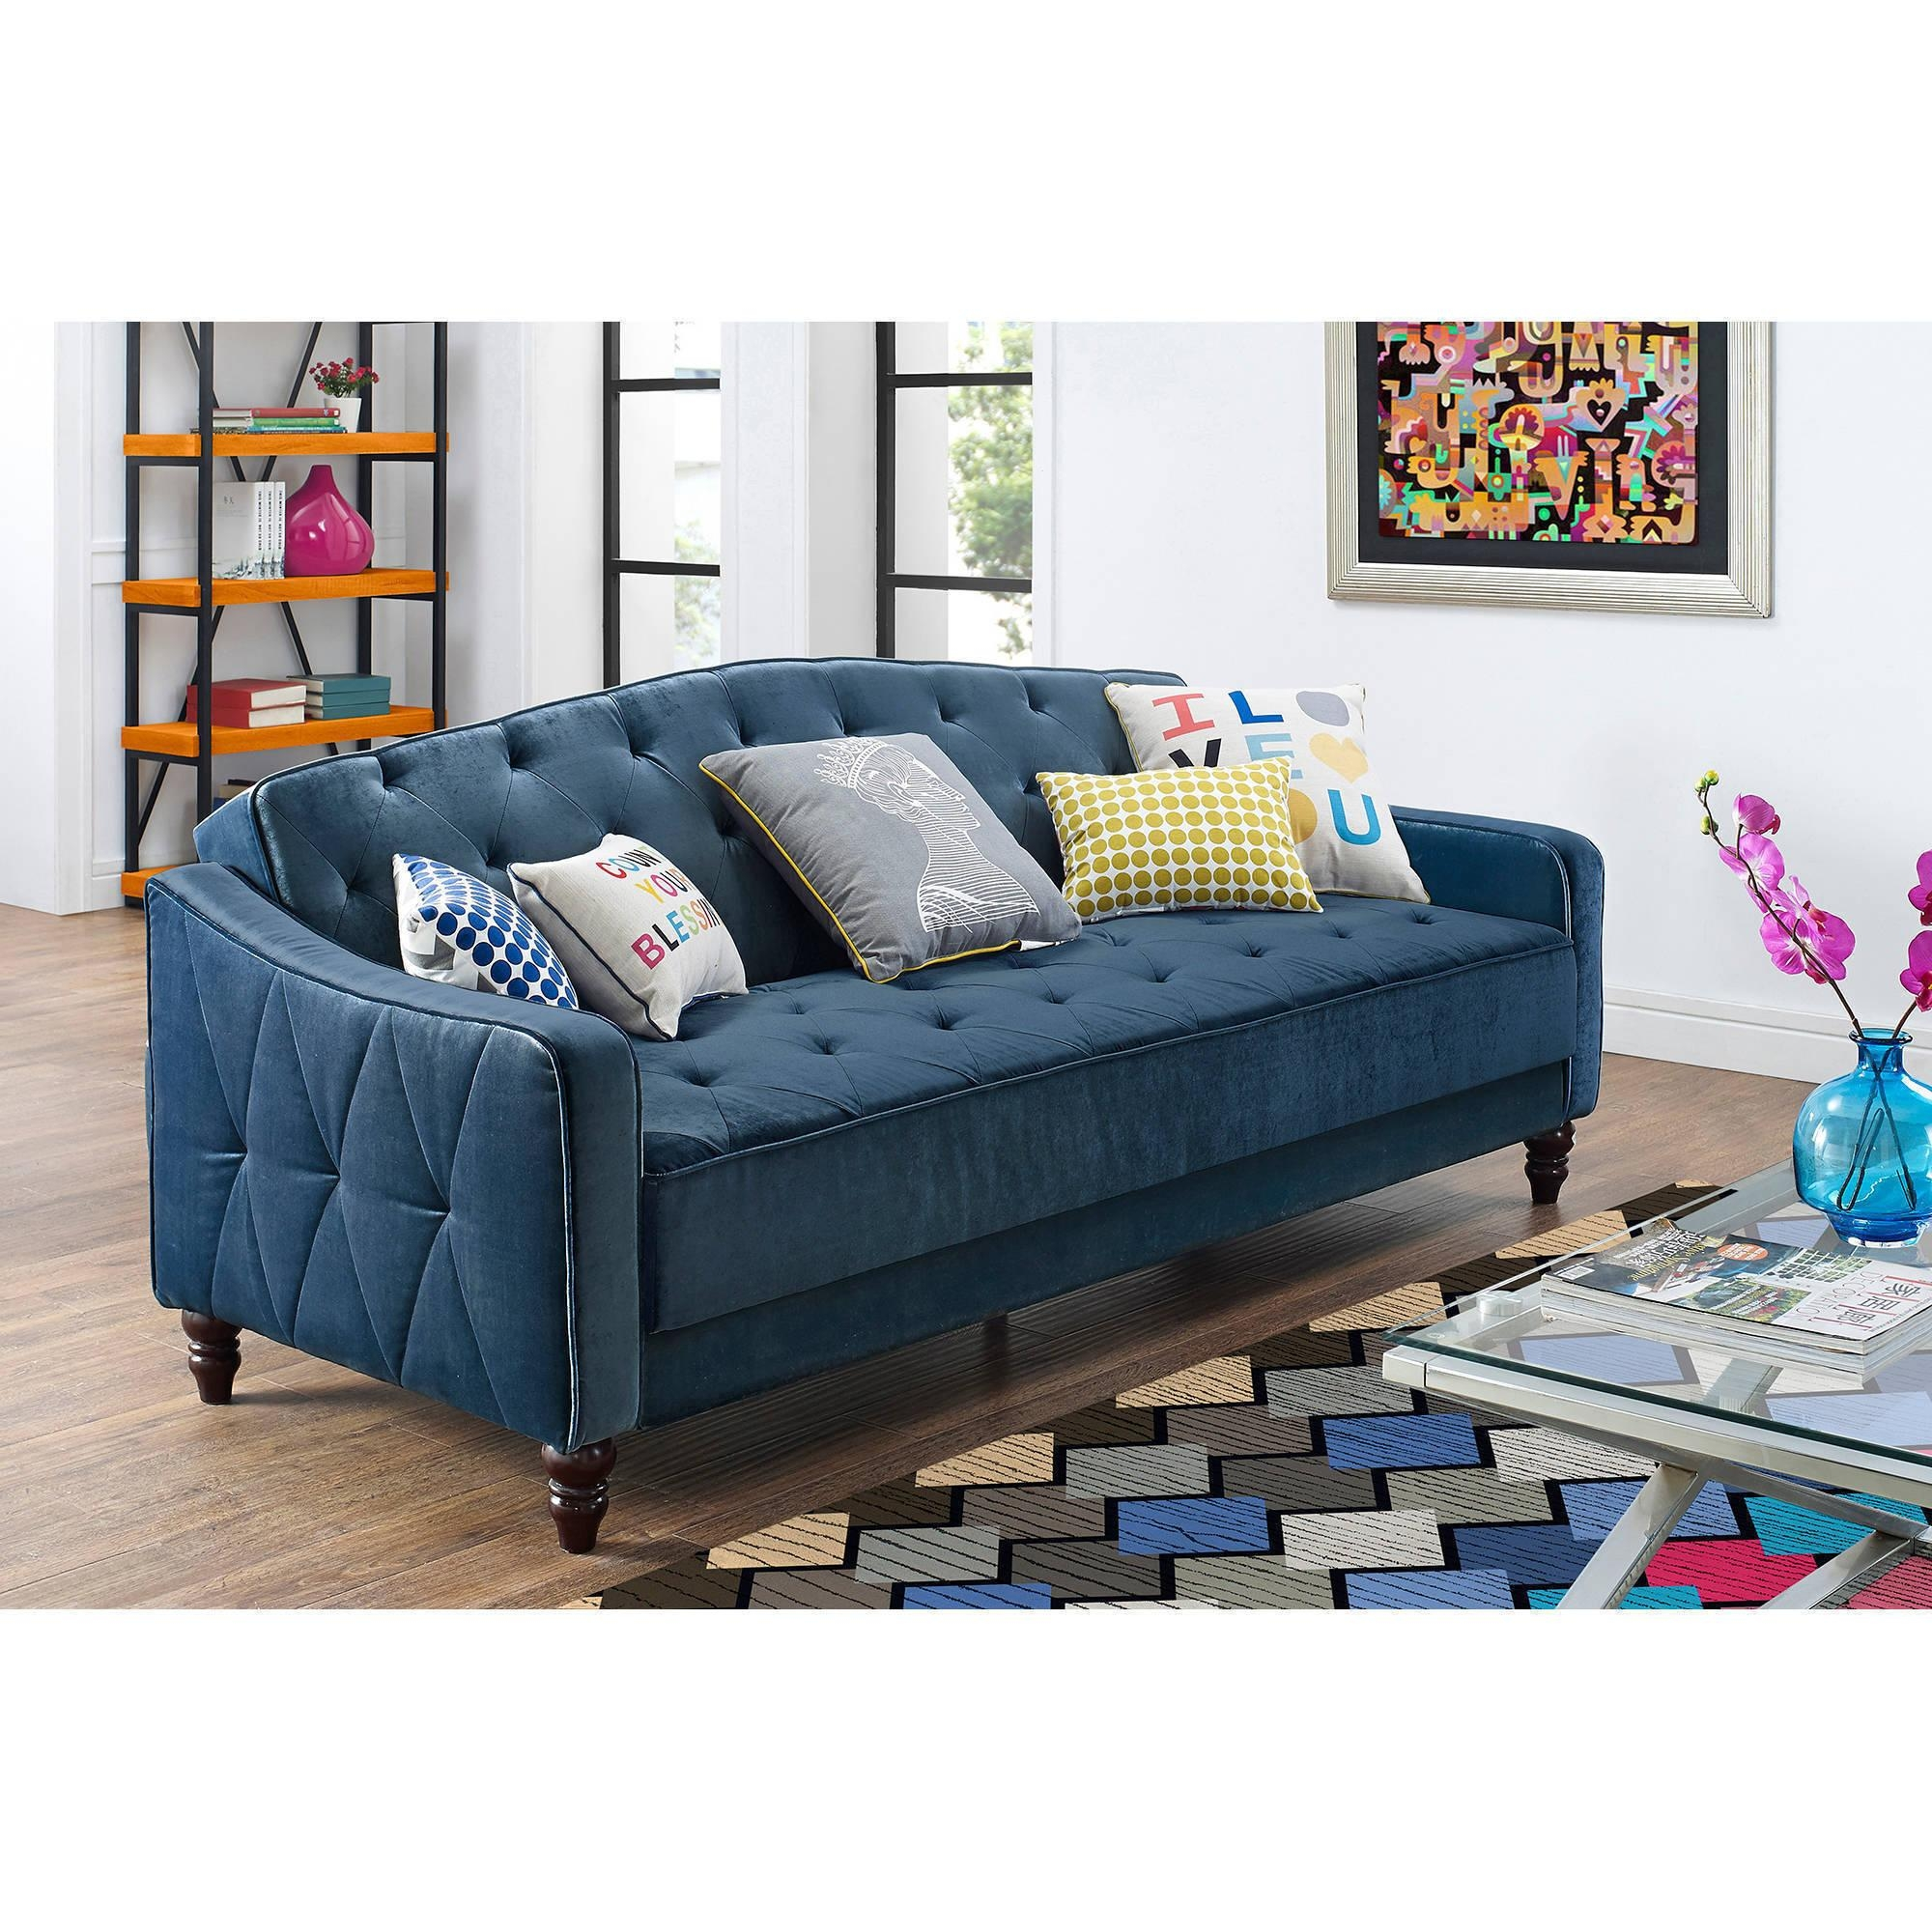 Sofa: Walmart Sofa Bed | Futon Value City | Couch Beds Inside City Sofa Beds (Image 16 of 20)